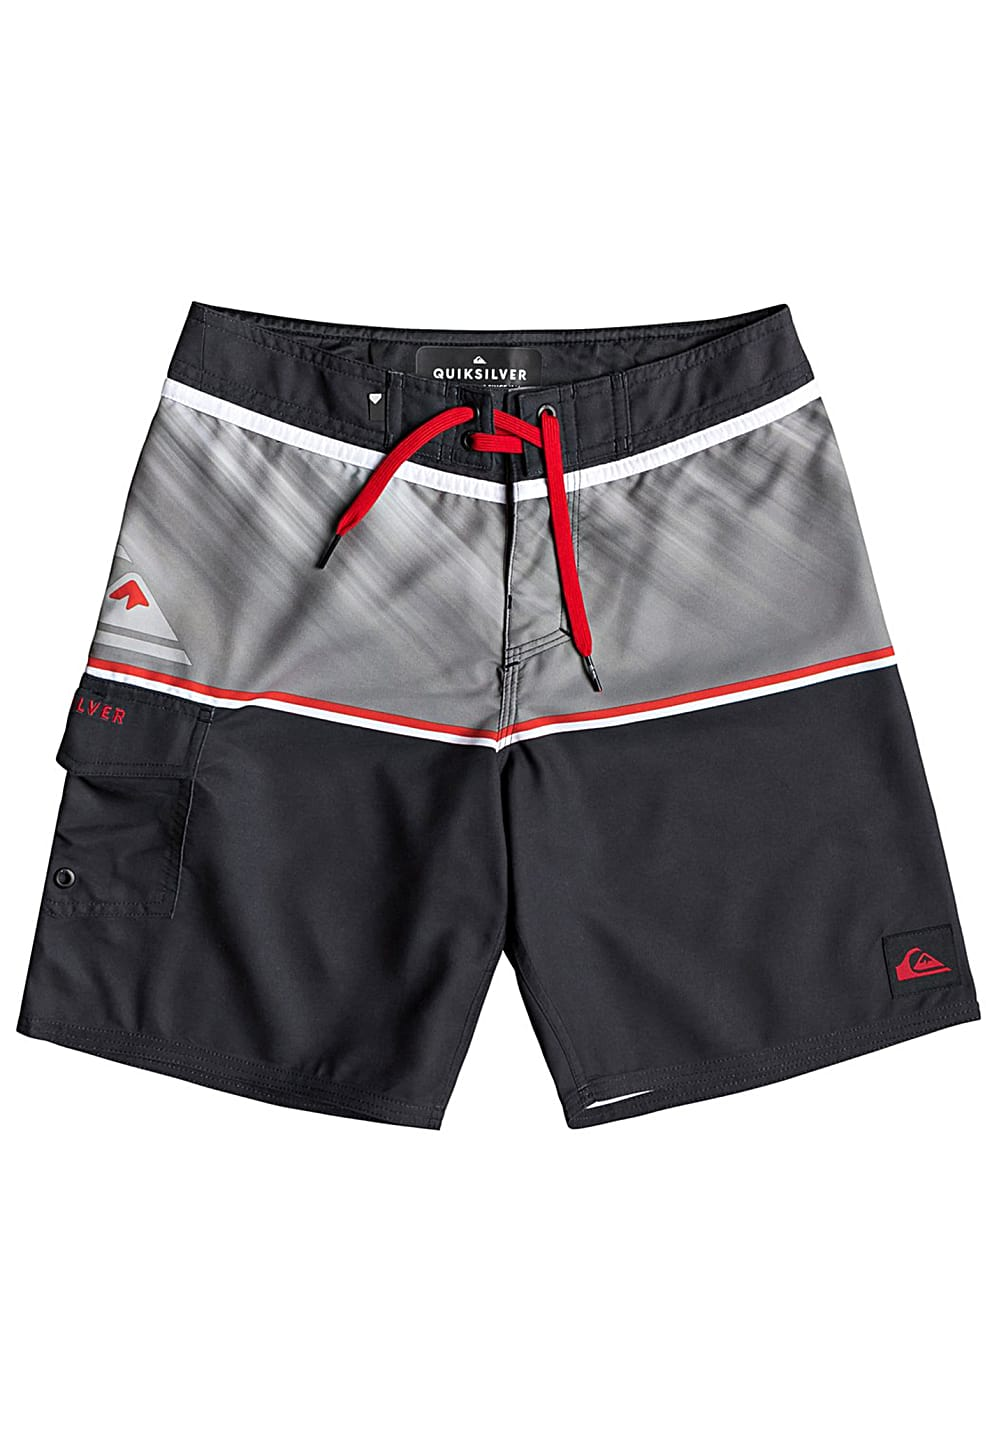 Boysbademode - Quiksilver Everyday Division 16 Boardshorts für Jungs Schwarz - Onlineshop Planet Sports